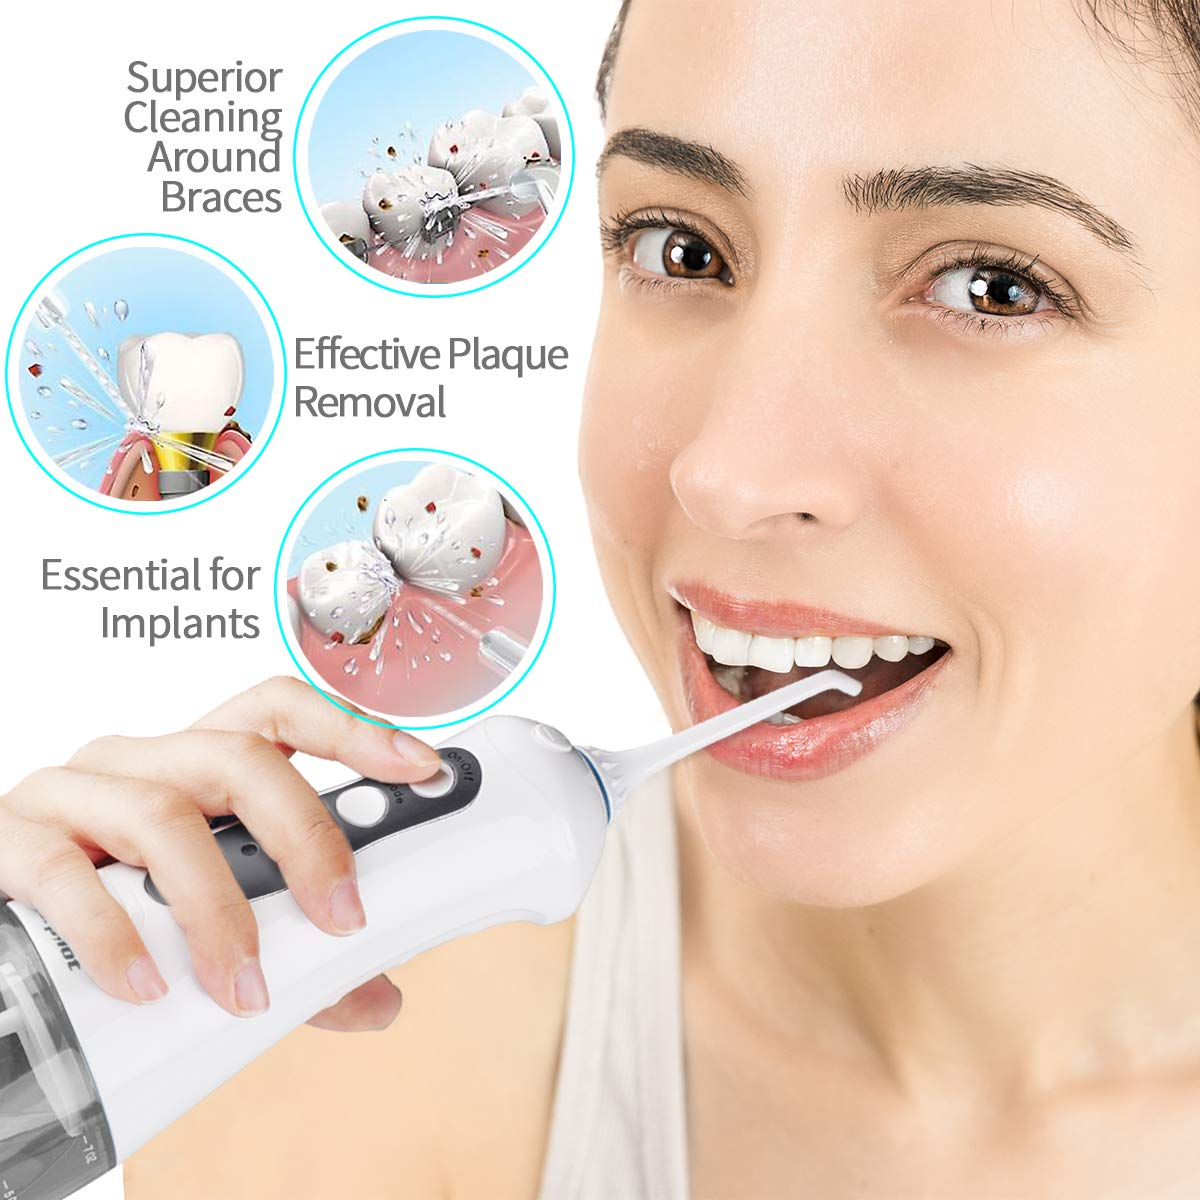 Water Flosser for Teeth,Power Floss Water Jet with 4 Jet Nozzles for Teeth Clean,Upgrade 300ml Detachable Reservoir,IPX7 Waterproof, USB Rechargeable, 3 Water Pressure and FDA Approved,Adapter Not Inclued